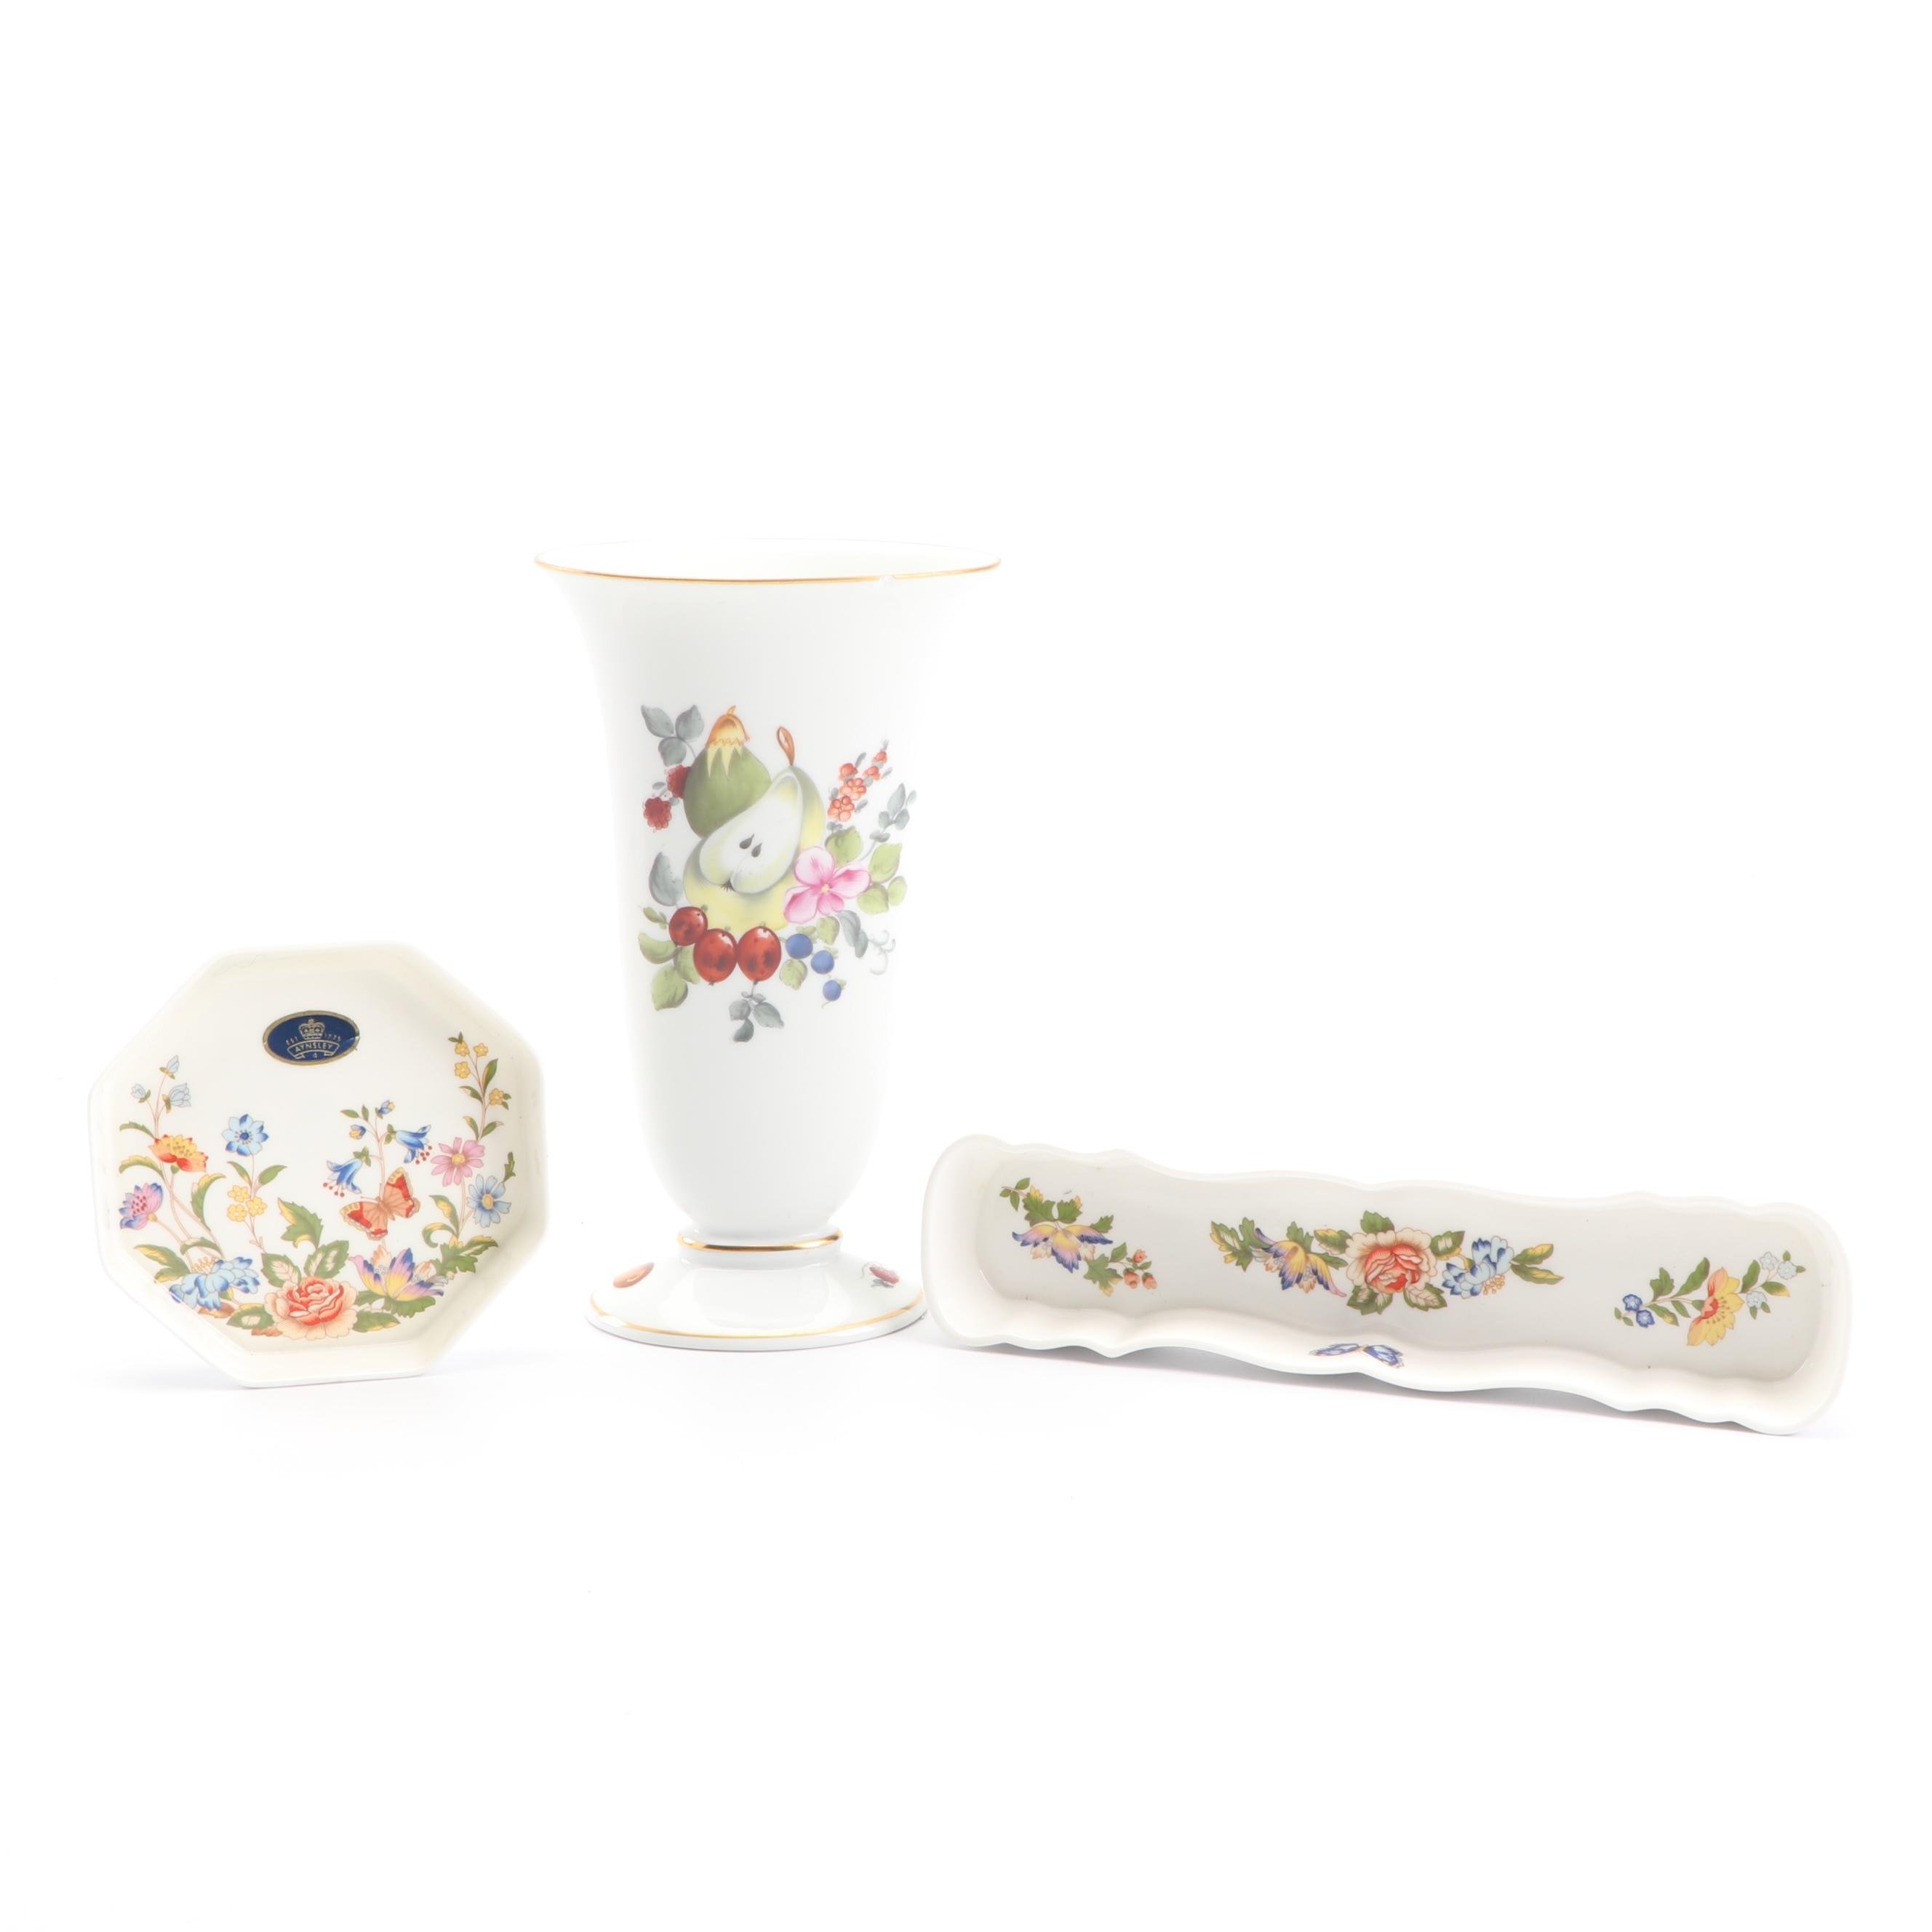 """Herend Hand-Painted """"Fruits and Flowers"""" Porcelain Vase with Aynsley Decor"""